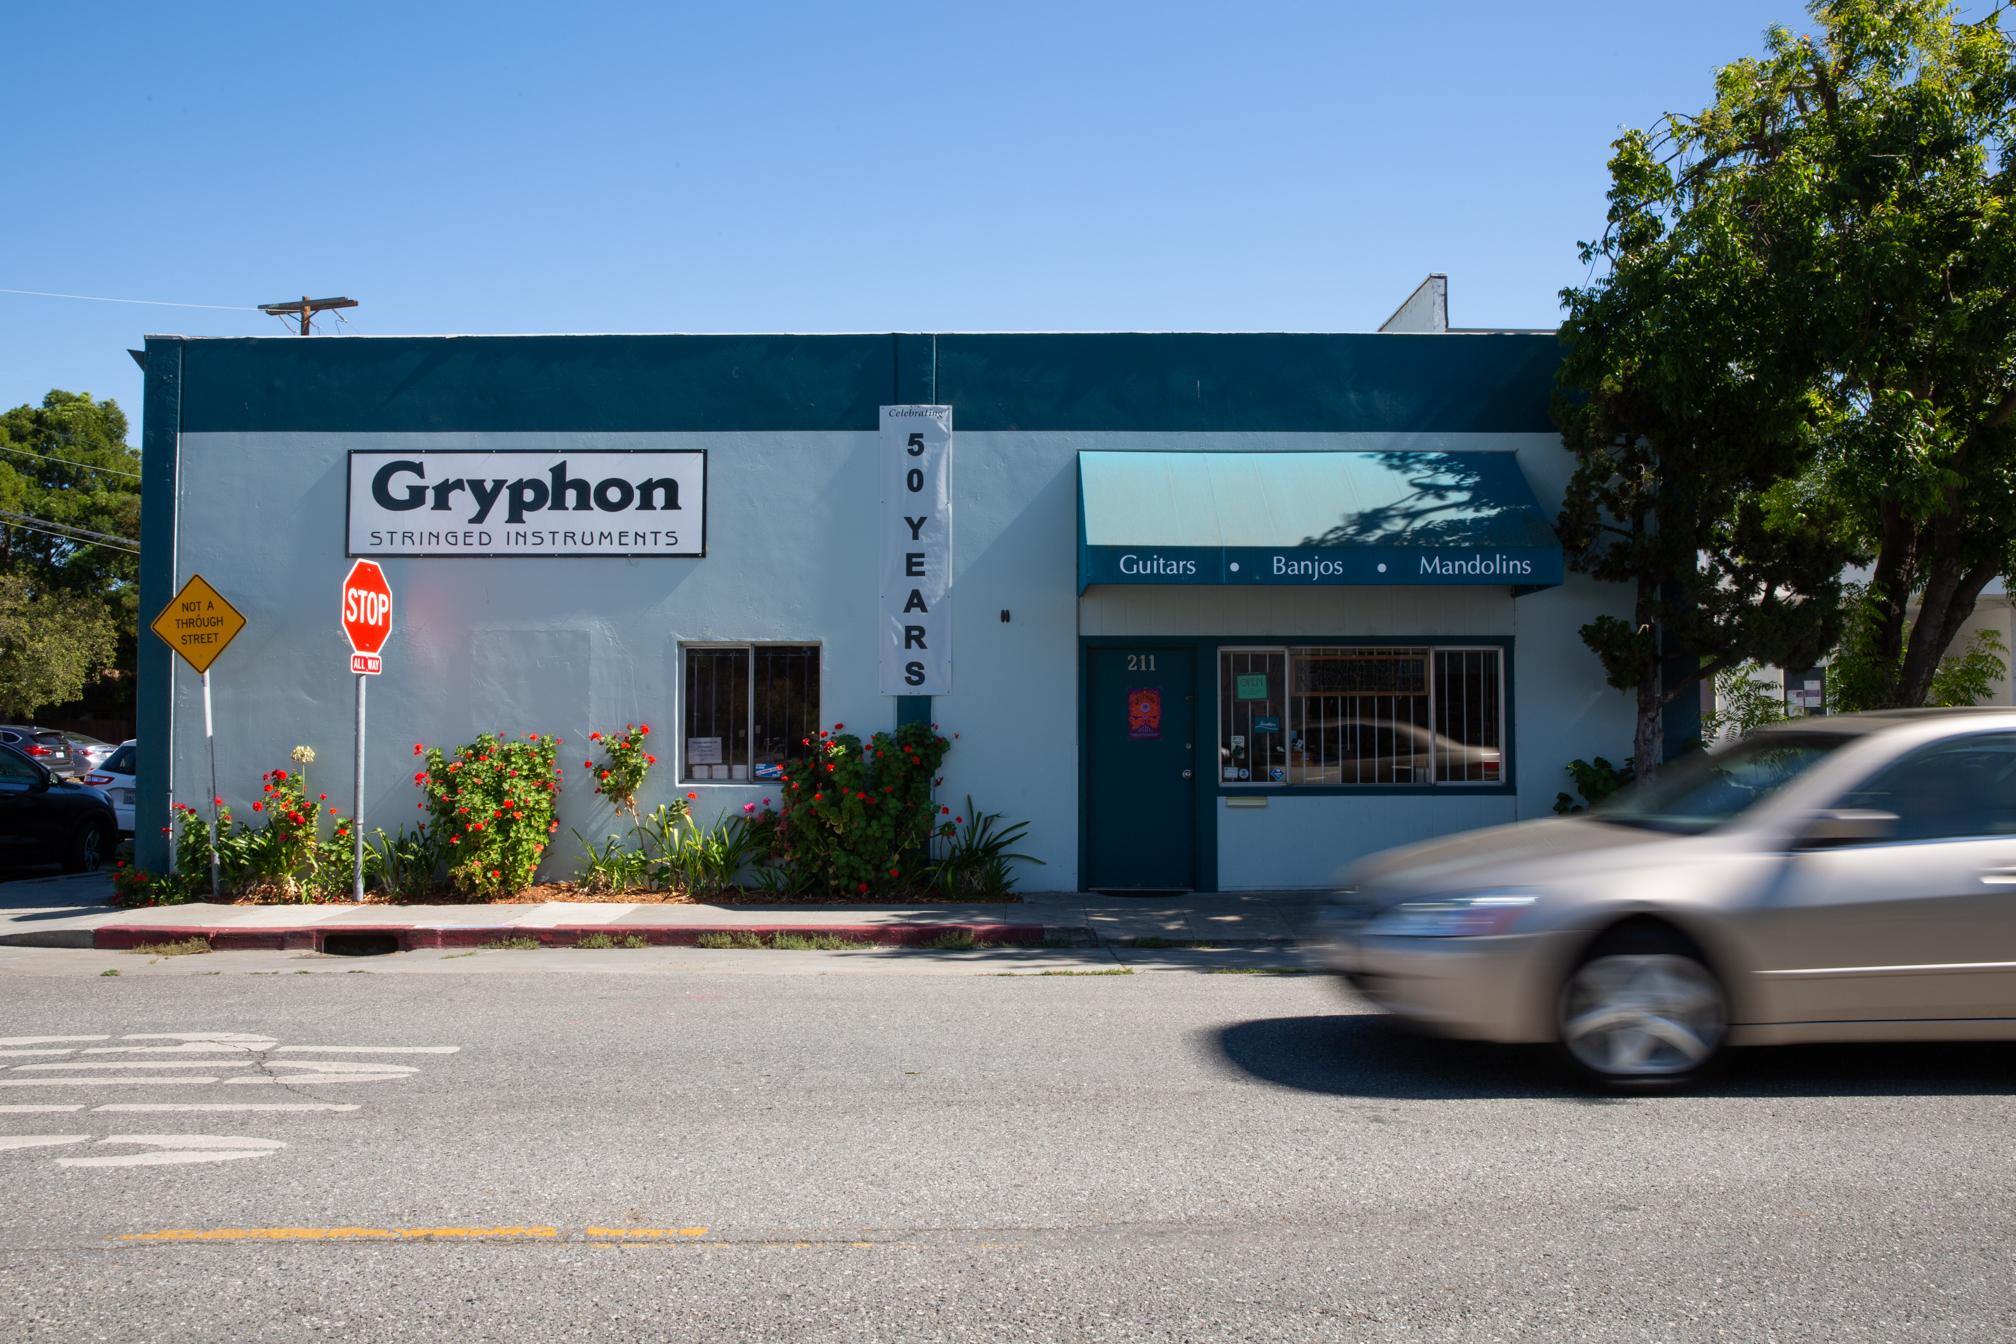 Gryphon Stringed Instruments moved from El Camino Real to itscurrent location at Park Boulevard and Lambert Avenue in 1975.